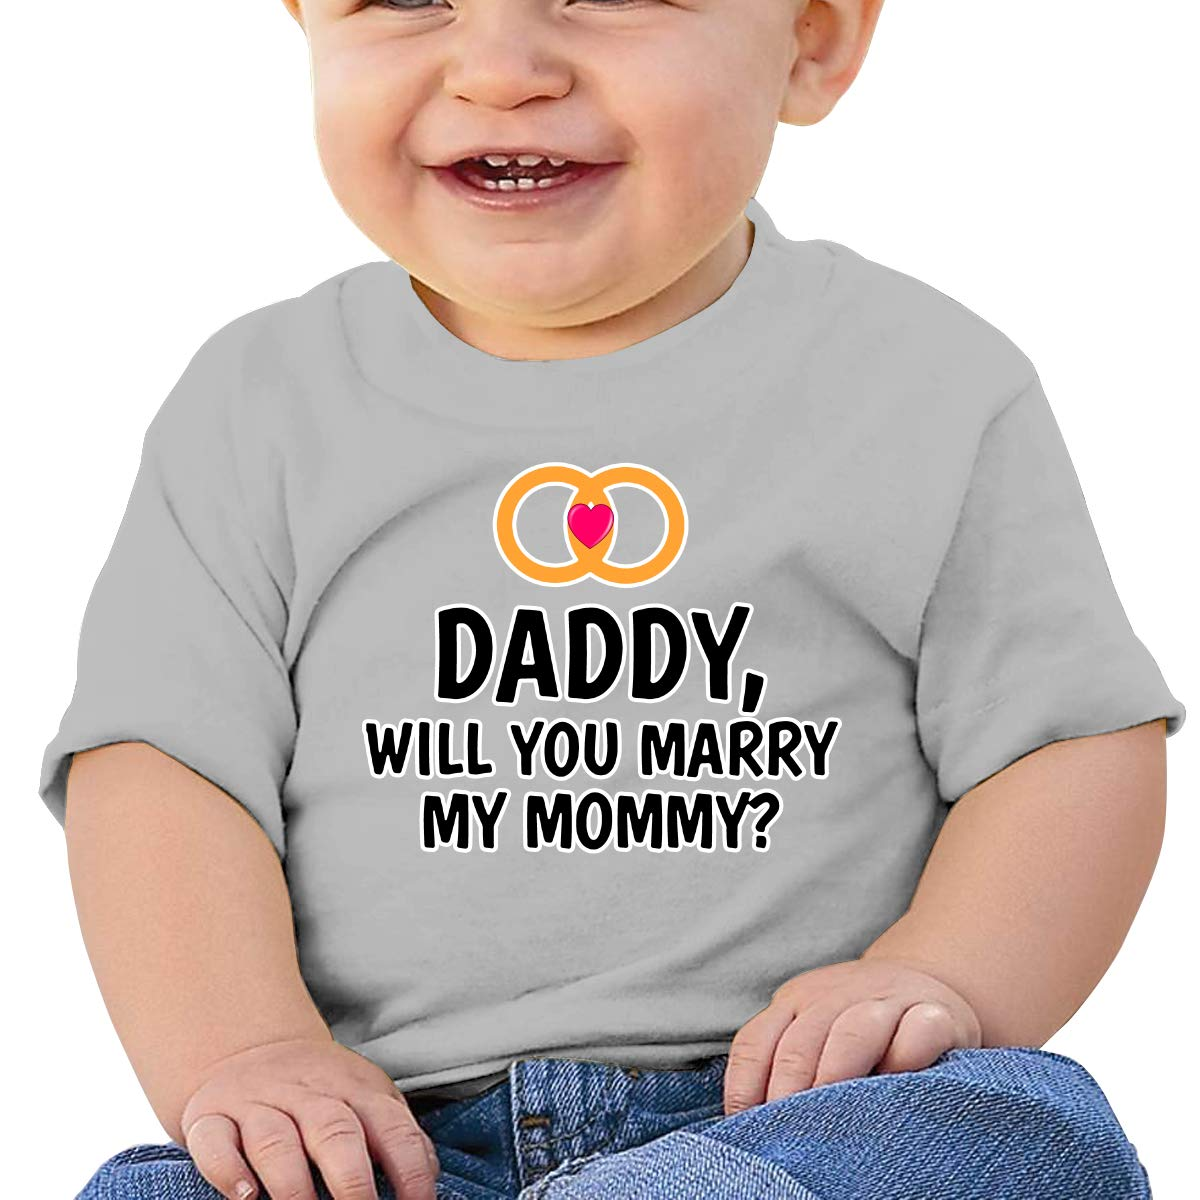 XHX403 Daddy Will You Marry My Mommy Infant Kids T Shirt Cotton Tee Toddler Baby 6-18M